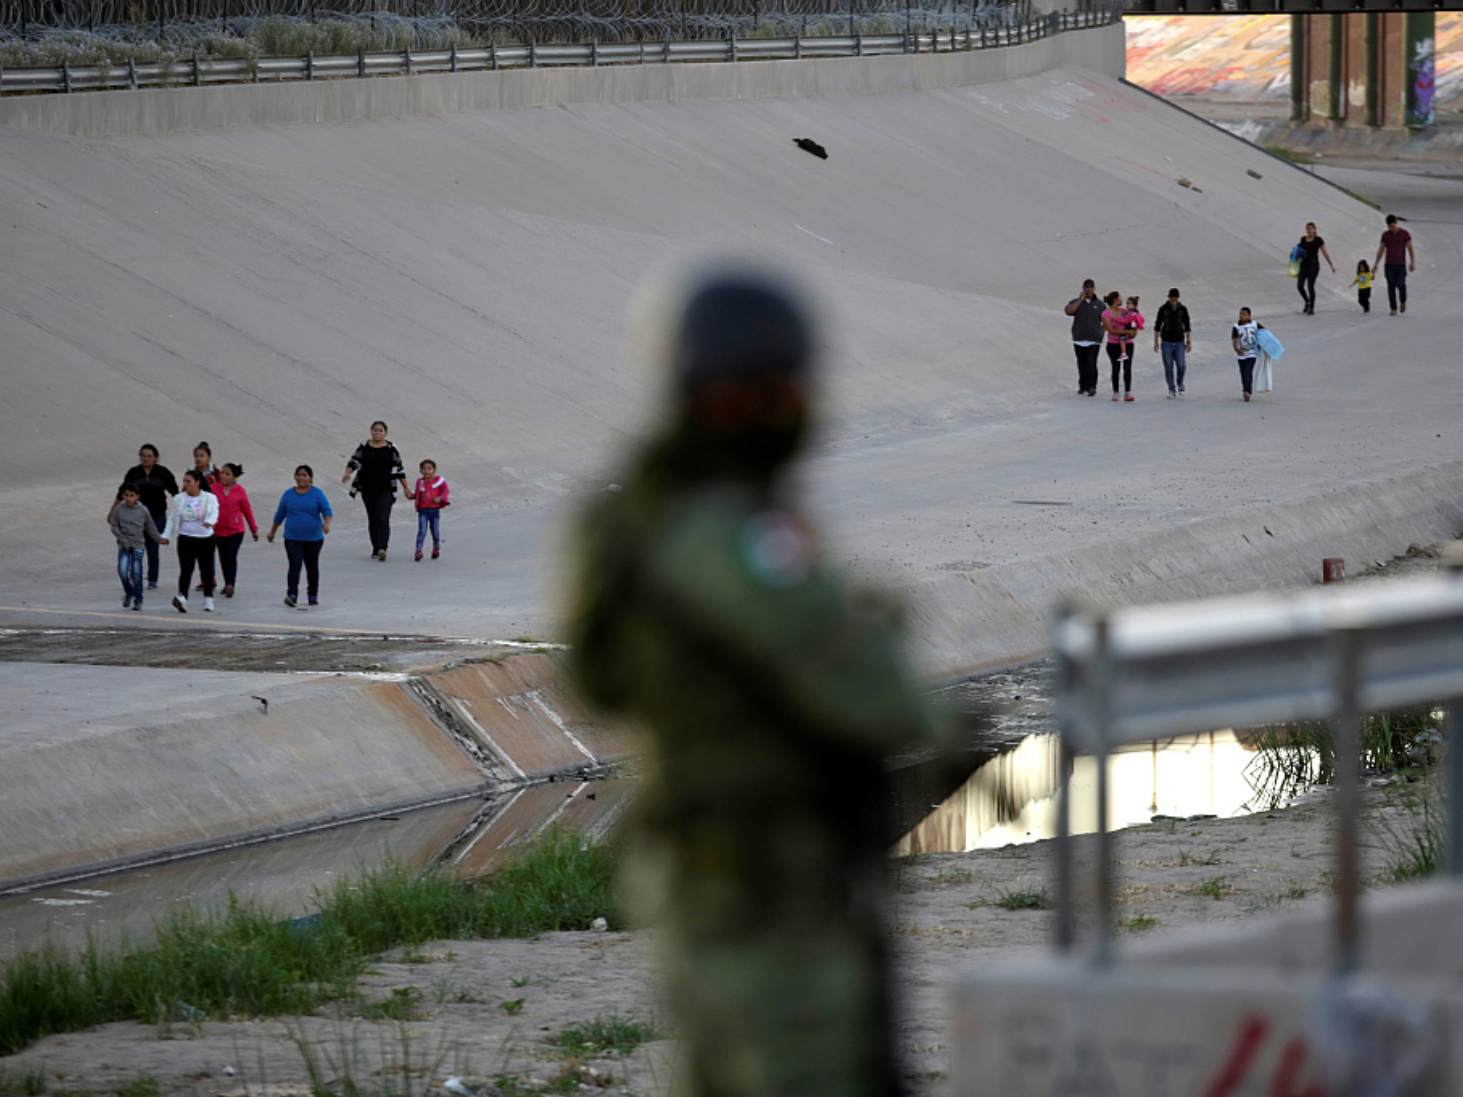 As migrants wait in fear, no sign of large-scale US raids